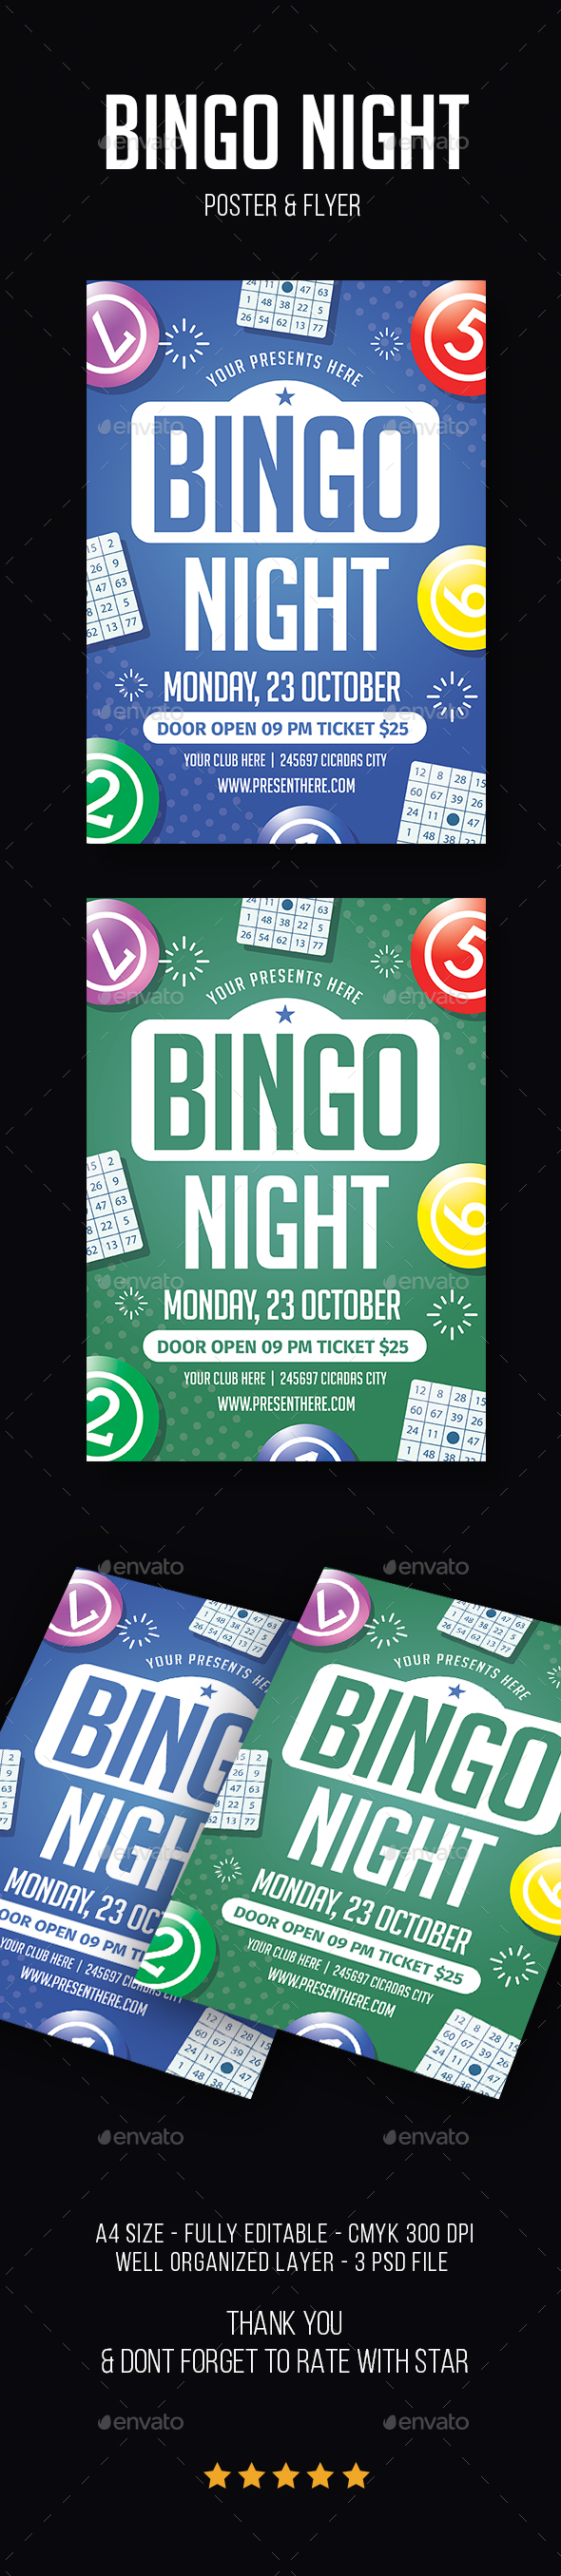 Bingo Night Flyer - Flyers Print Templates